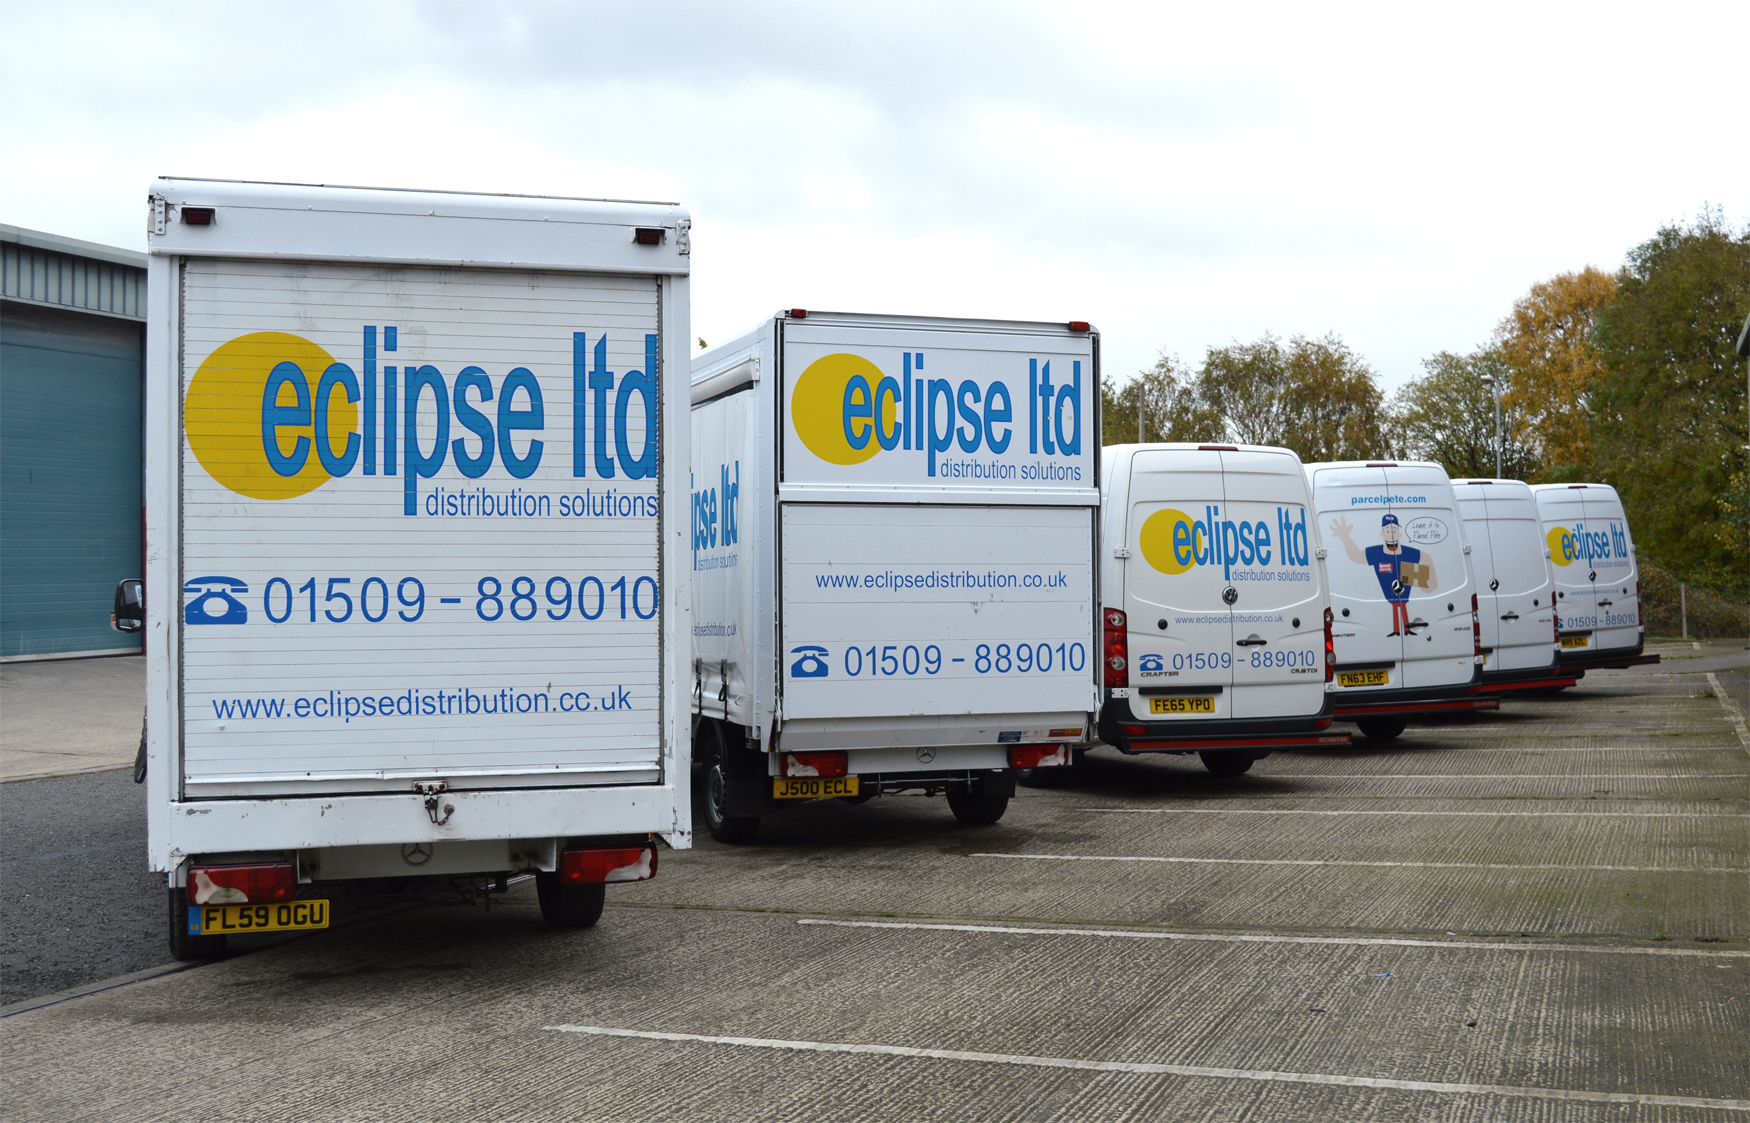 An image showing the rear view of a fleet of Eclipse Distribution Solutions Ltd vans and lorries. in various sizes parked outside.